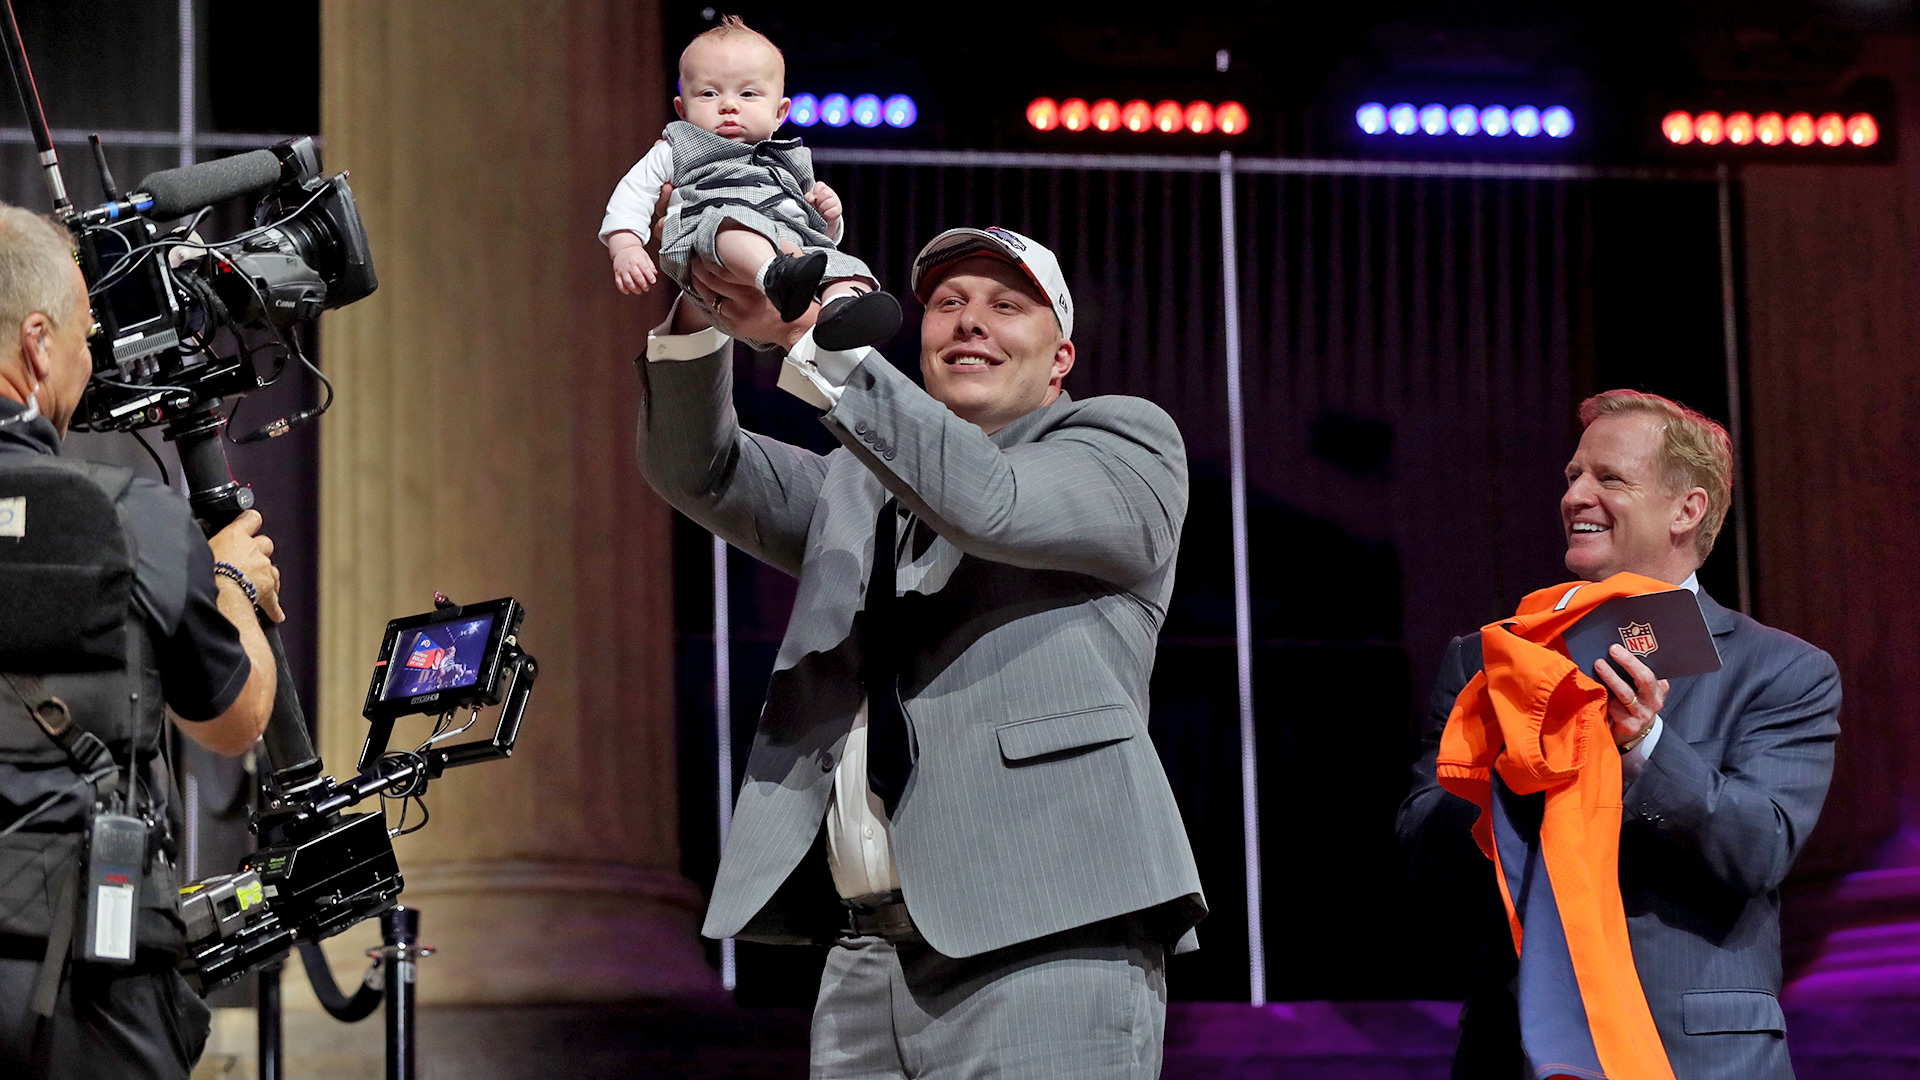 Utah offensive tackle Garett Bolles holds his son Kingston after being selected by the Denver Broncos with the 20th pick during the first round of the 2017 NFL Draft on Thursday, April 27, 2017 in Philadelphia. (Perry Knotts via AP)